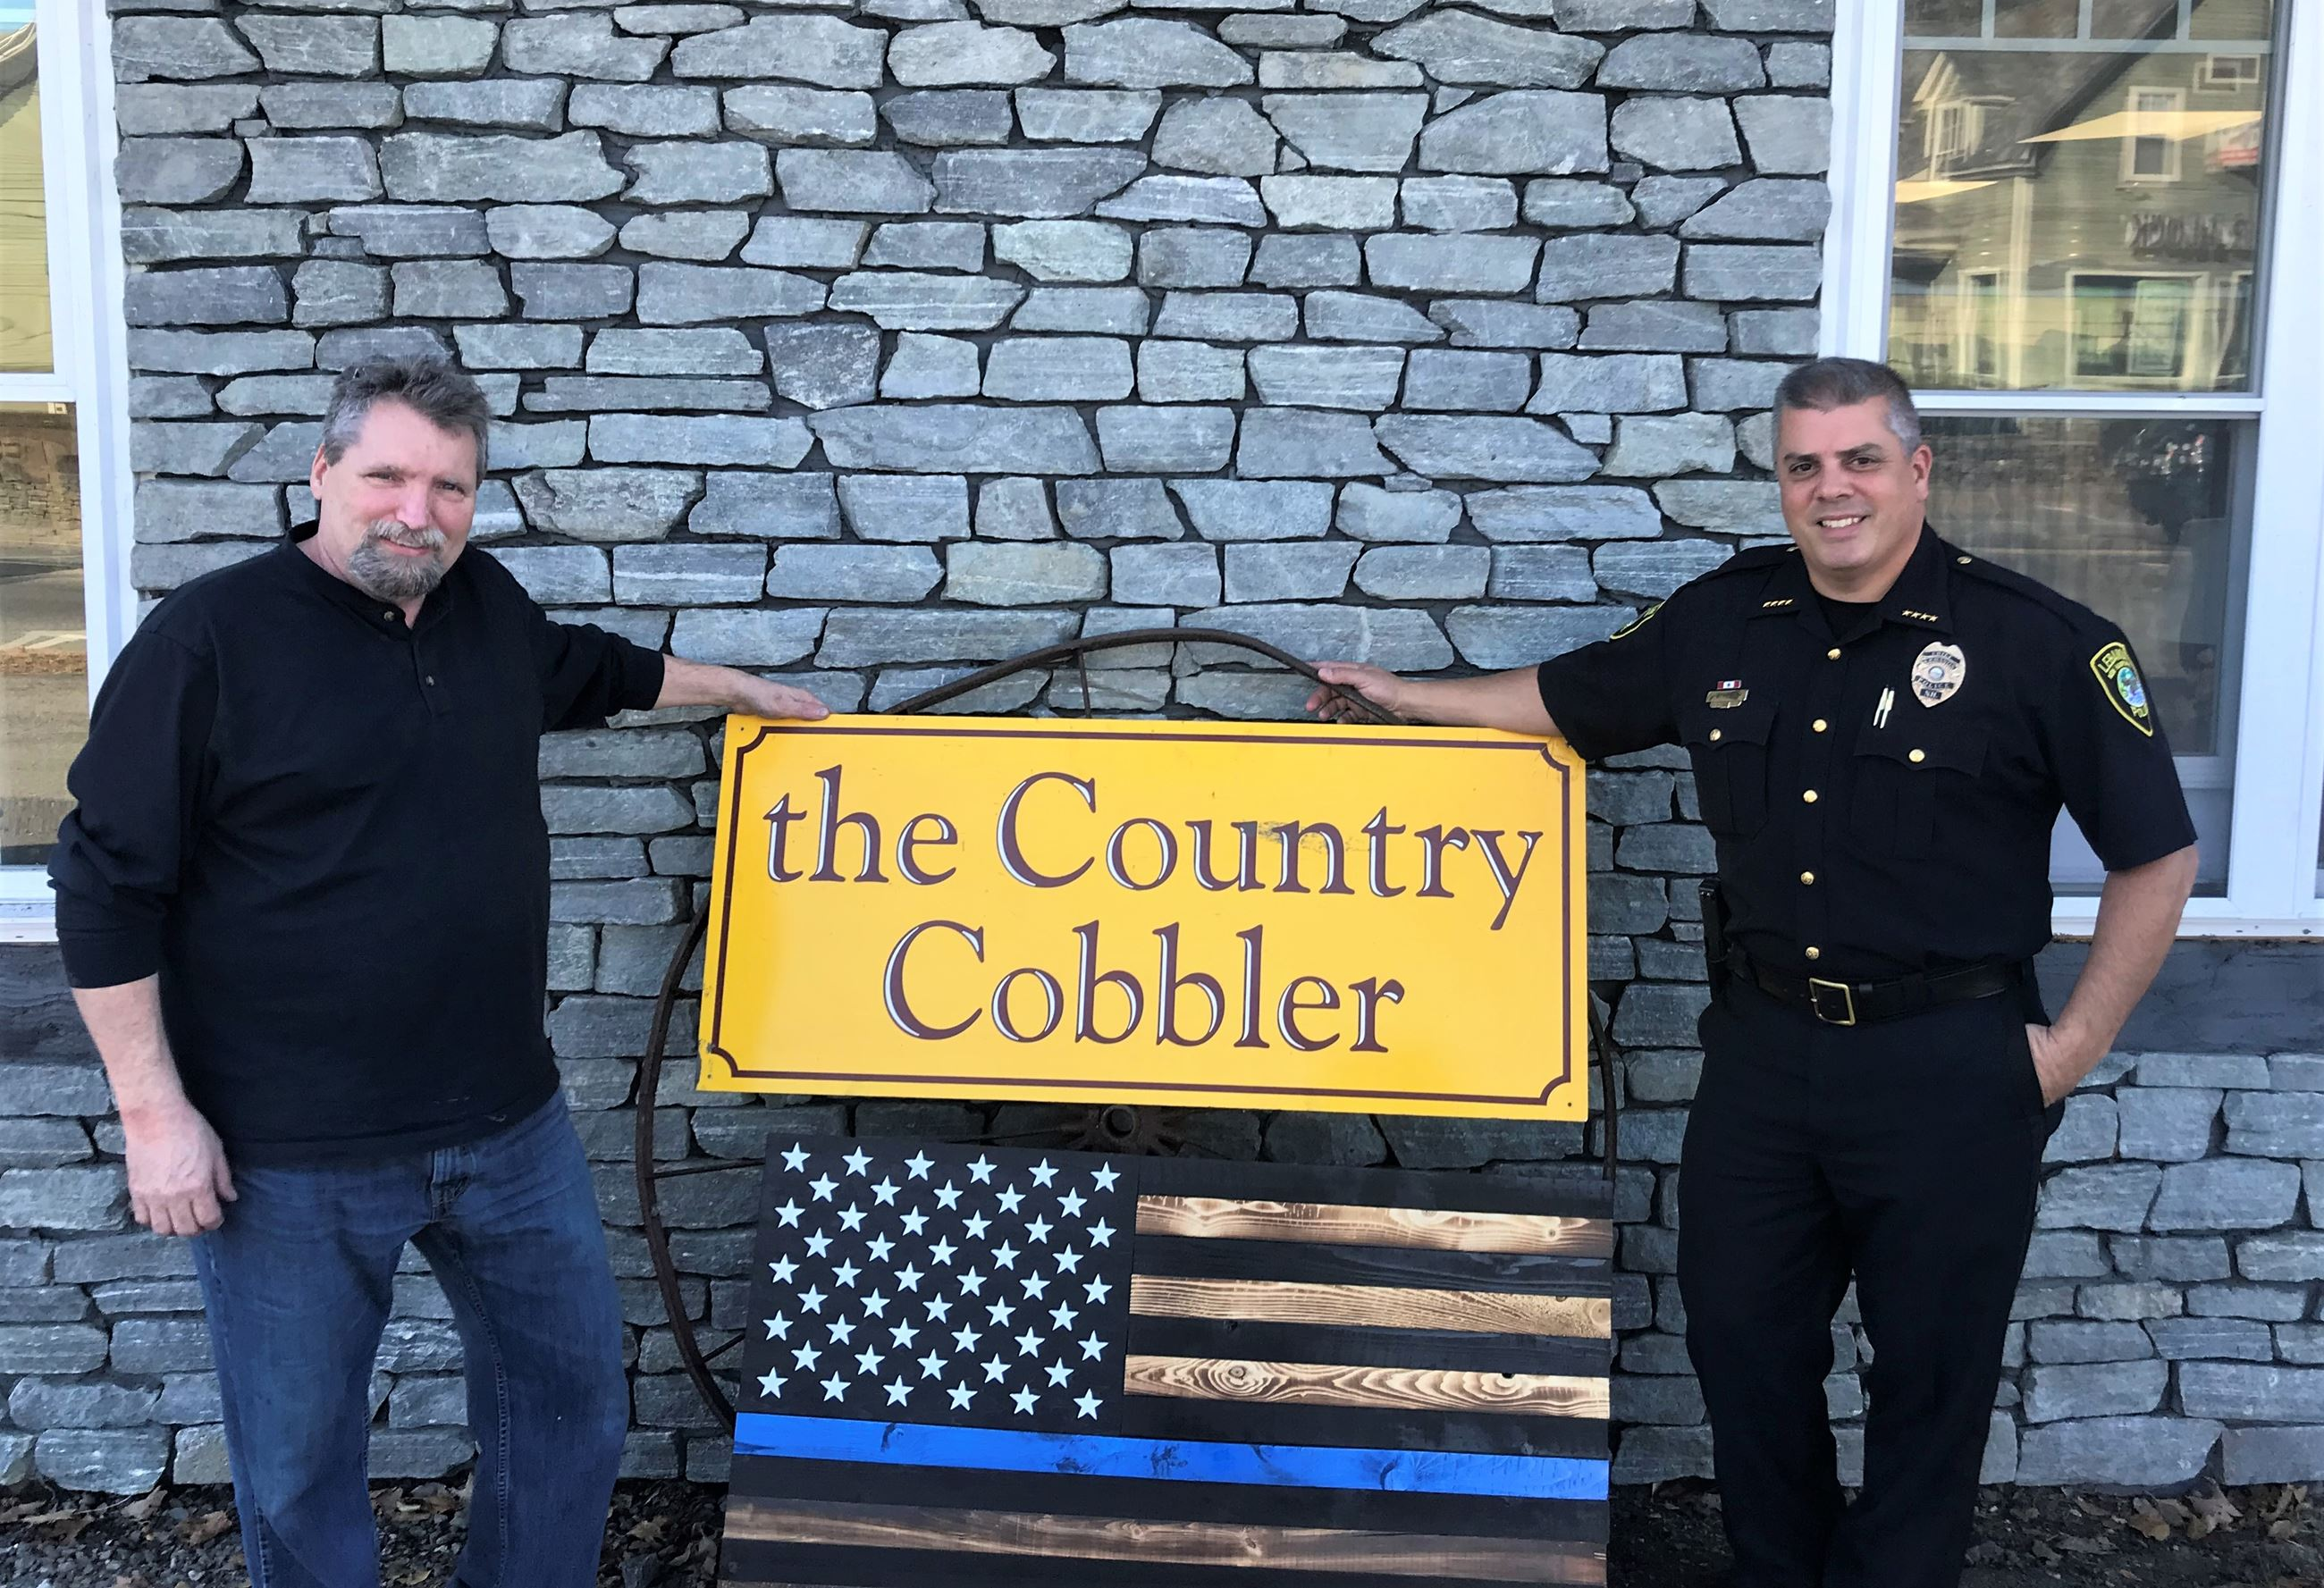 Jeff Peavey from the Country Cobbler, and Chief Mello